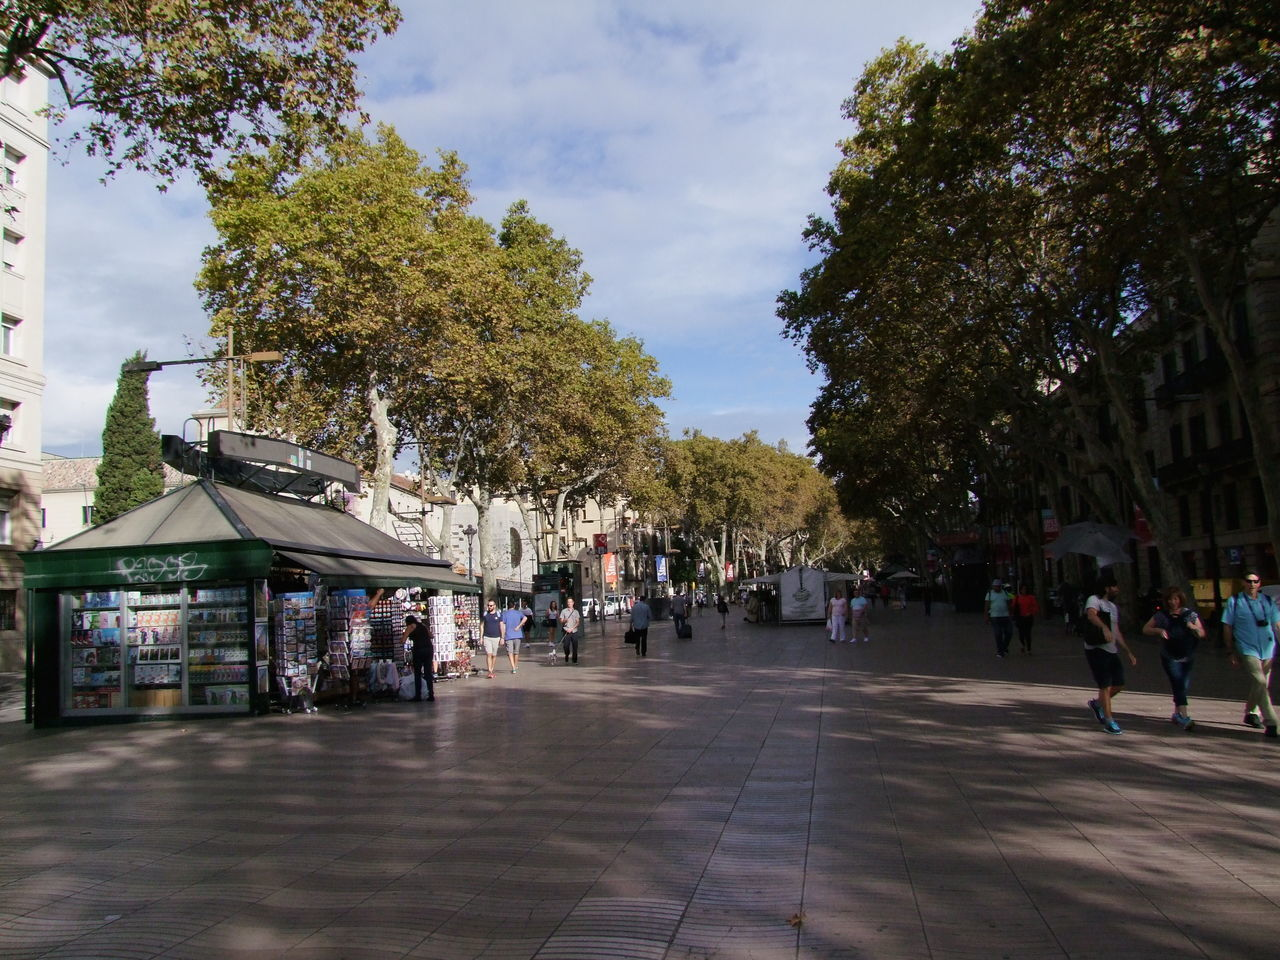 Early Morning on Rambla Avenue Barcelona Blue Sky White Clouds Buildings City Composition Diminishing Perspective Full Frame Incidental People Leisure Activity Outdoor Photography Ramblas Spaın Street Sunlight And Shadows Tourism Tourist Attraction  Tourist Destination Tree Walkway